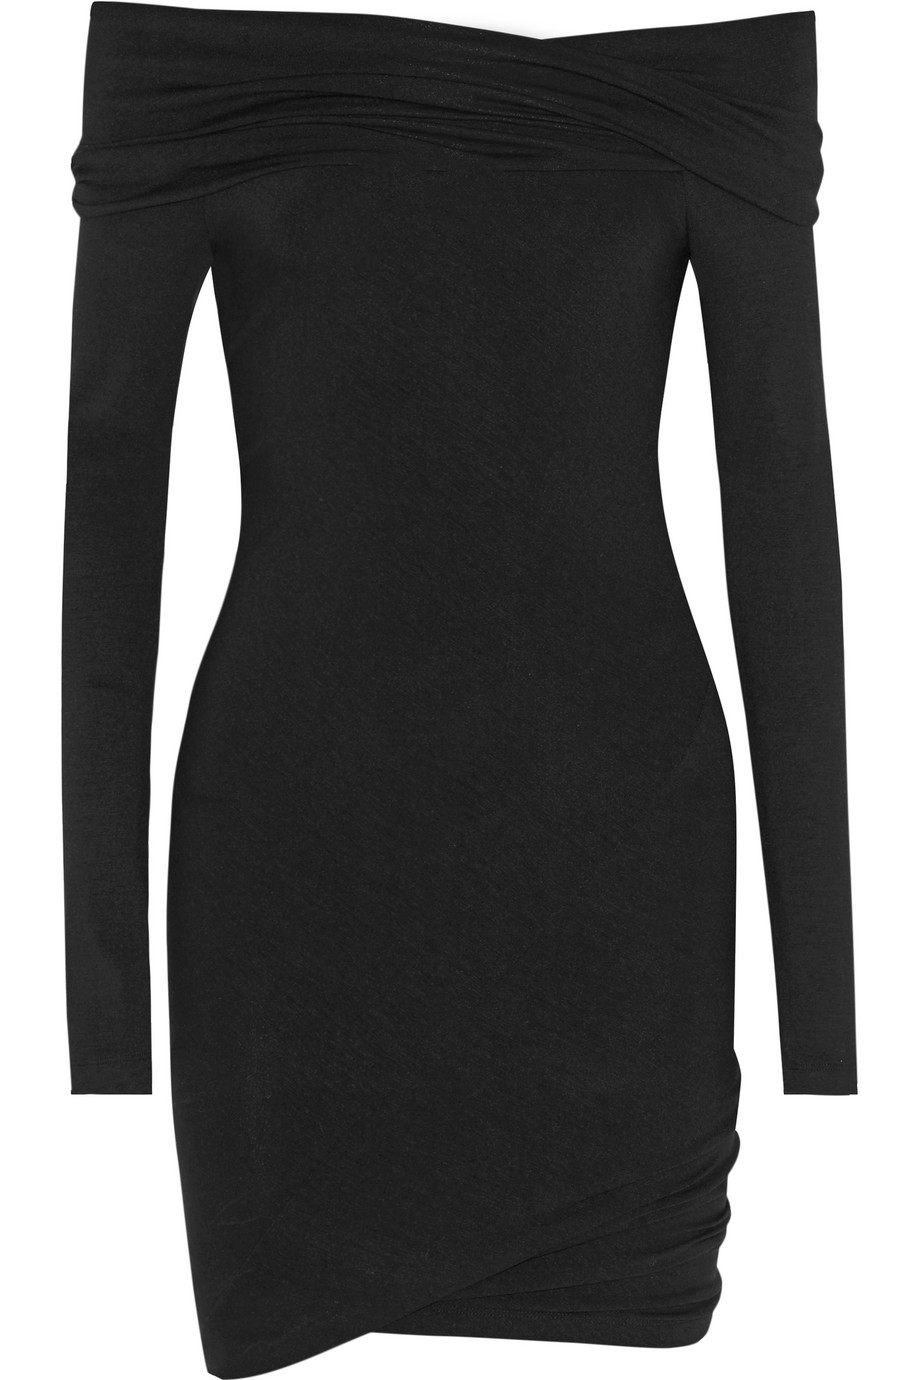 Off-the-Shoulder Stretch-Jersey Tunic, Donna Karan New York, Black, Women's, Size: L